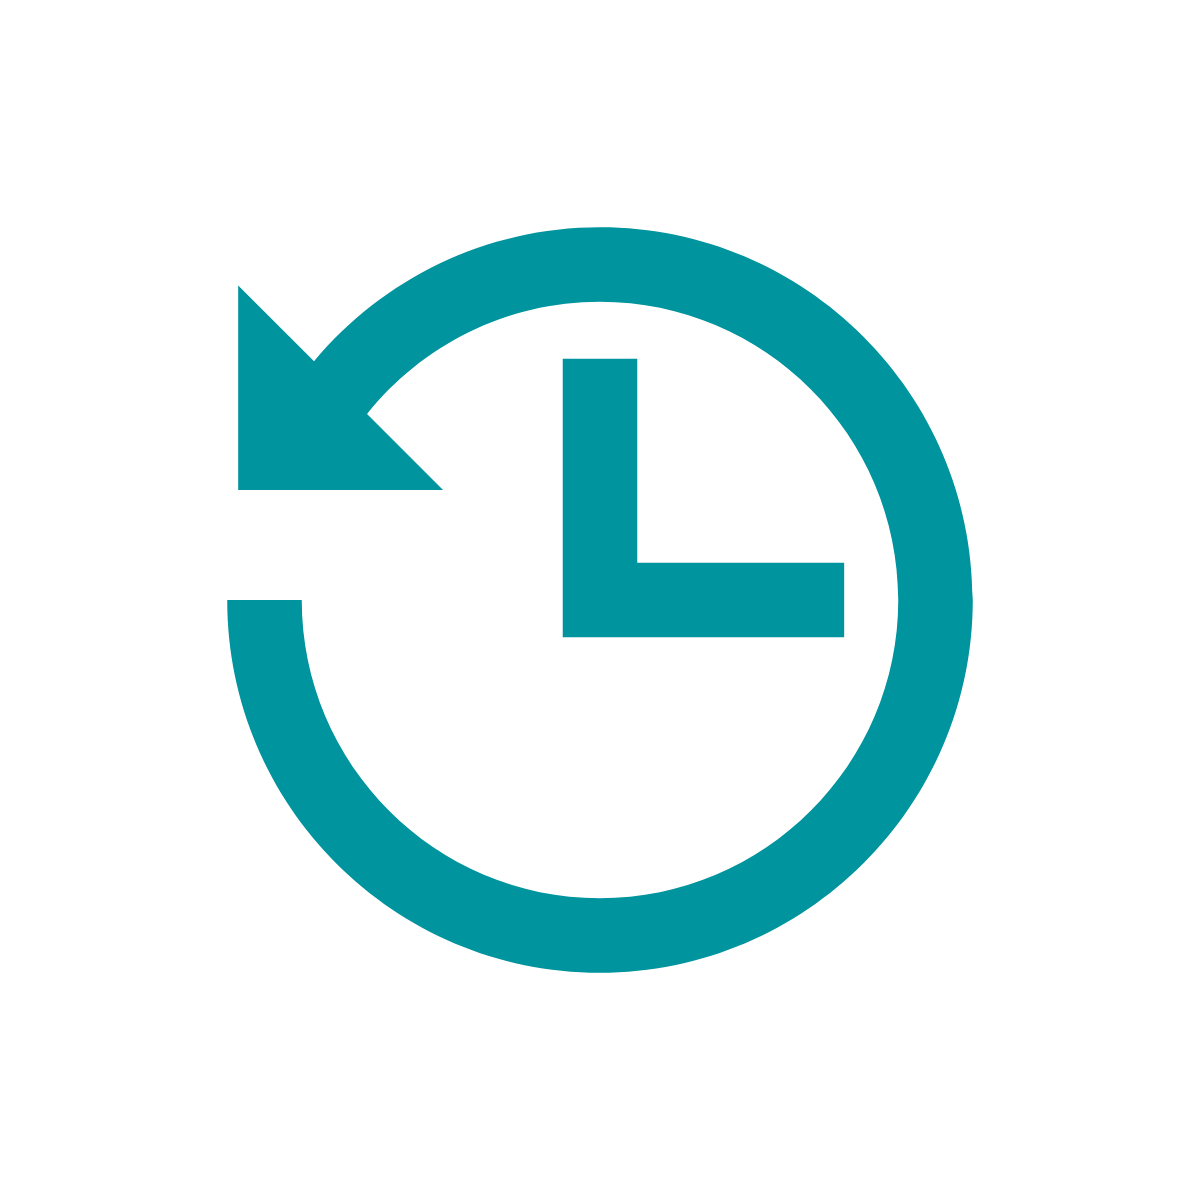 Icon of clock with arrow pointing backwards